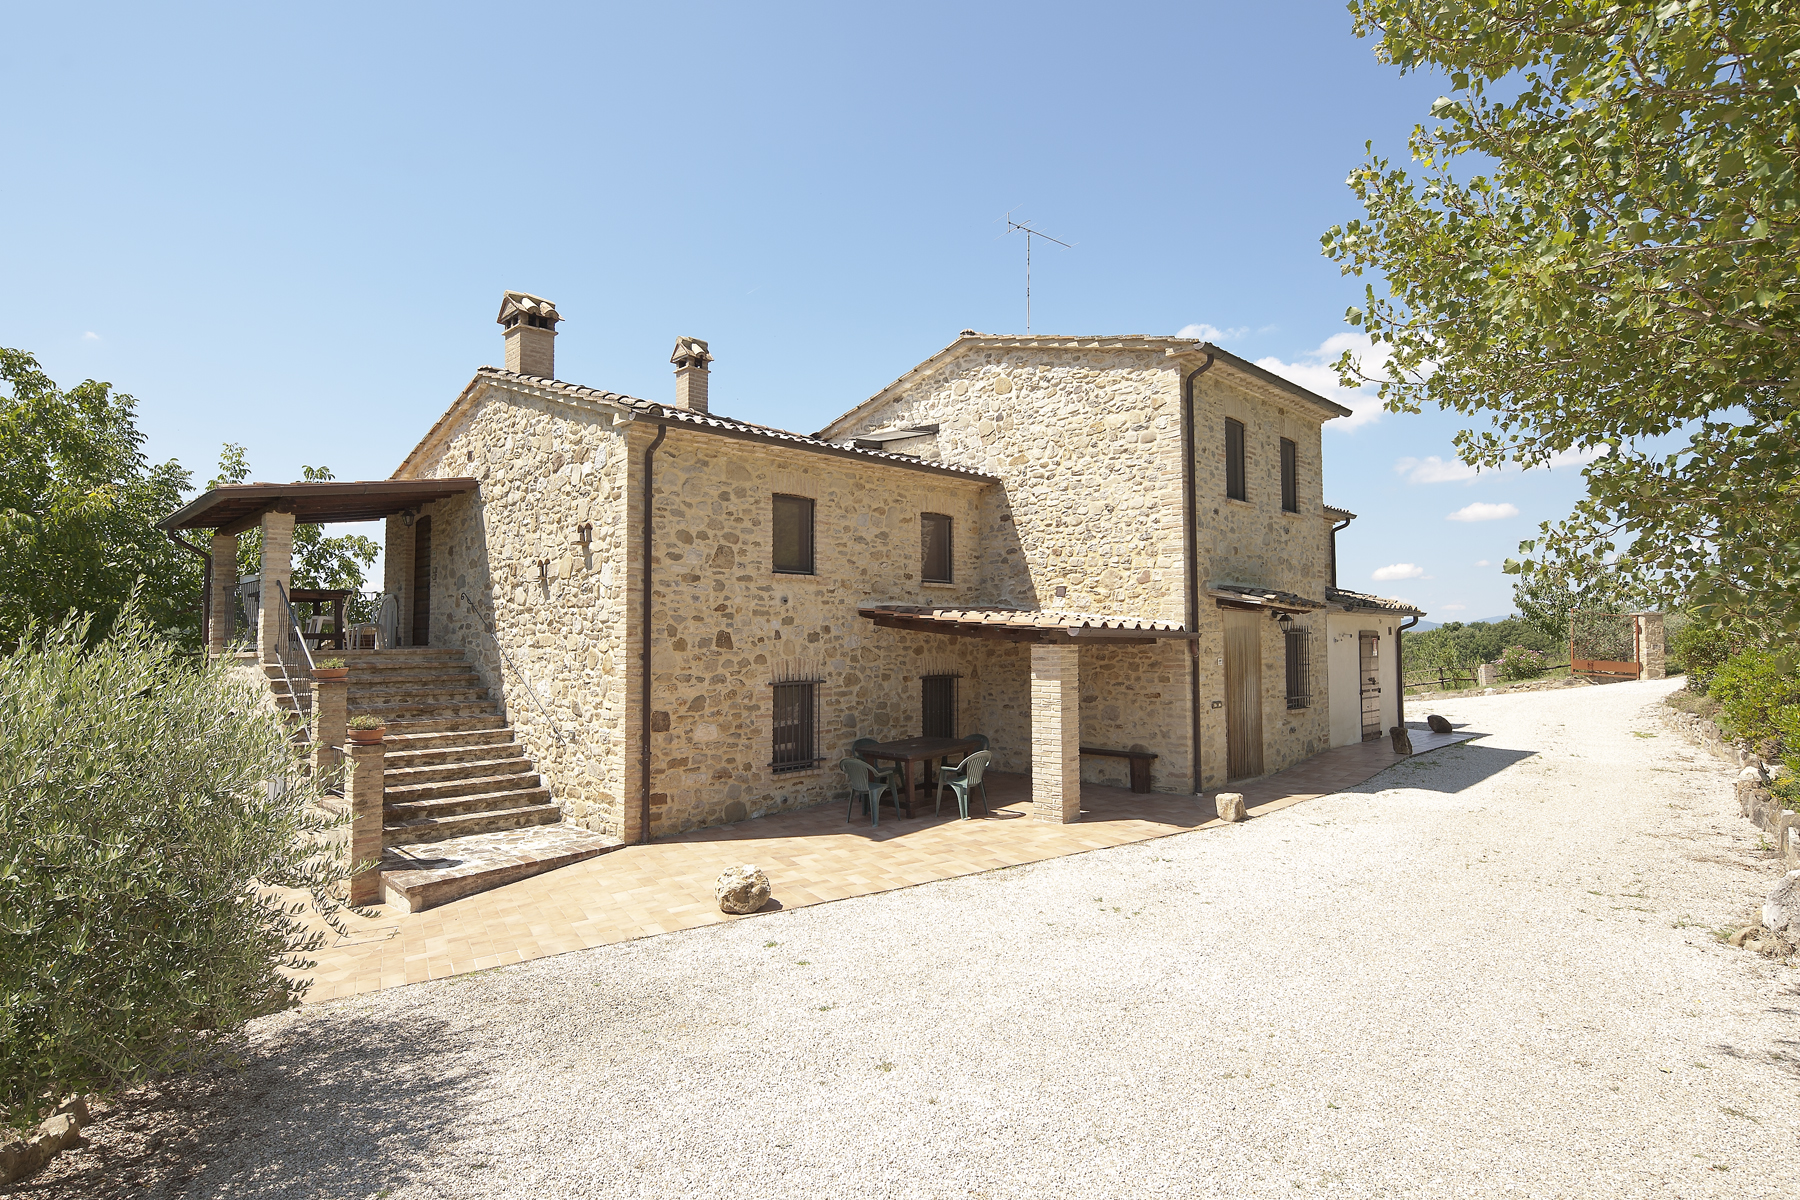 Single Family Home for Sale at Unique county homes in Umbrian countryside Umbertide Perugia, Perugia 06019 Italy